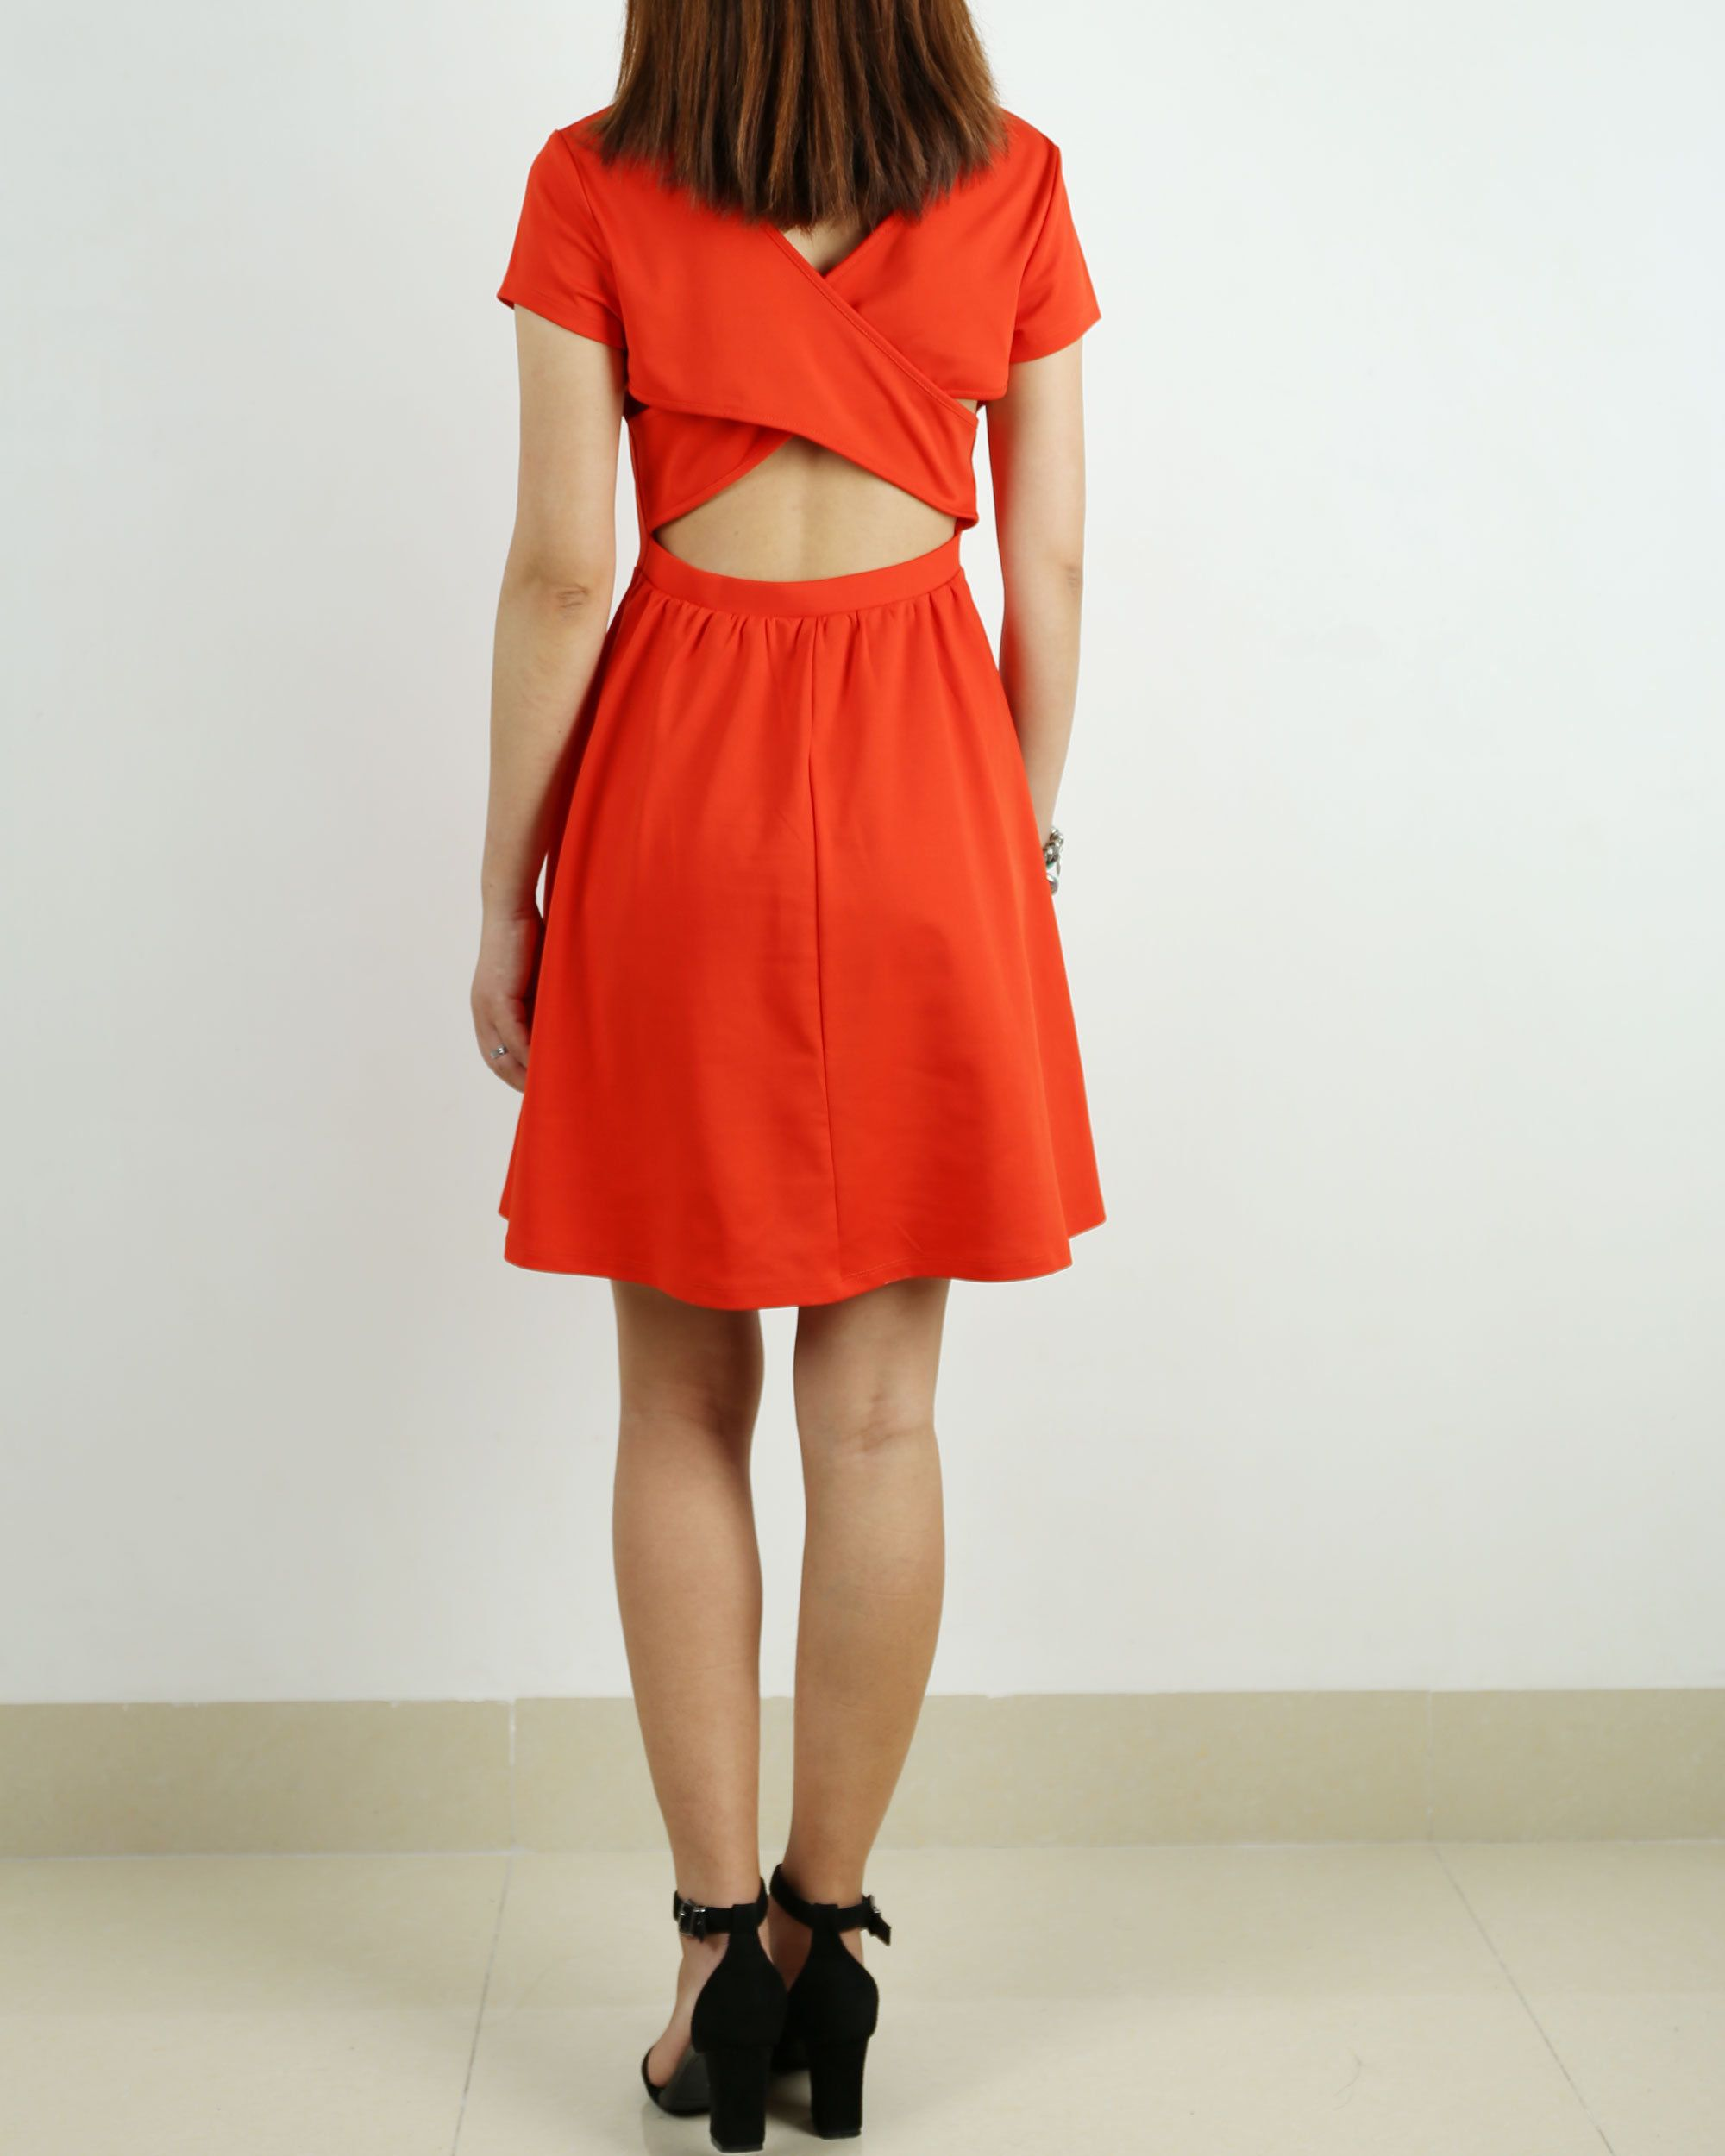 Sexy backless dress, form fitting knit dress, short sleeve dress, summer dress, evening dress, orange dress, ponte-de-roma dress(Q1017)